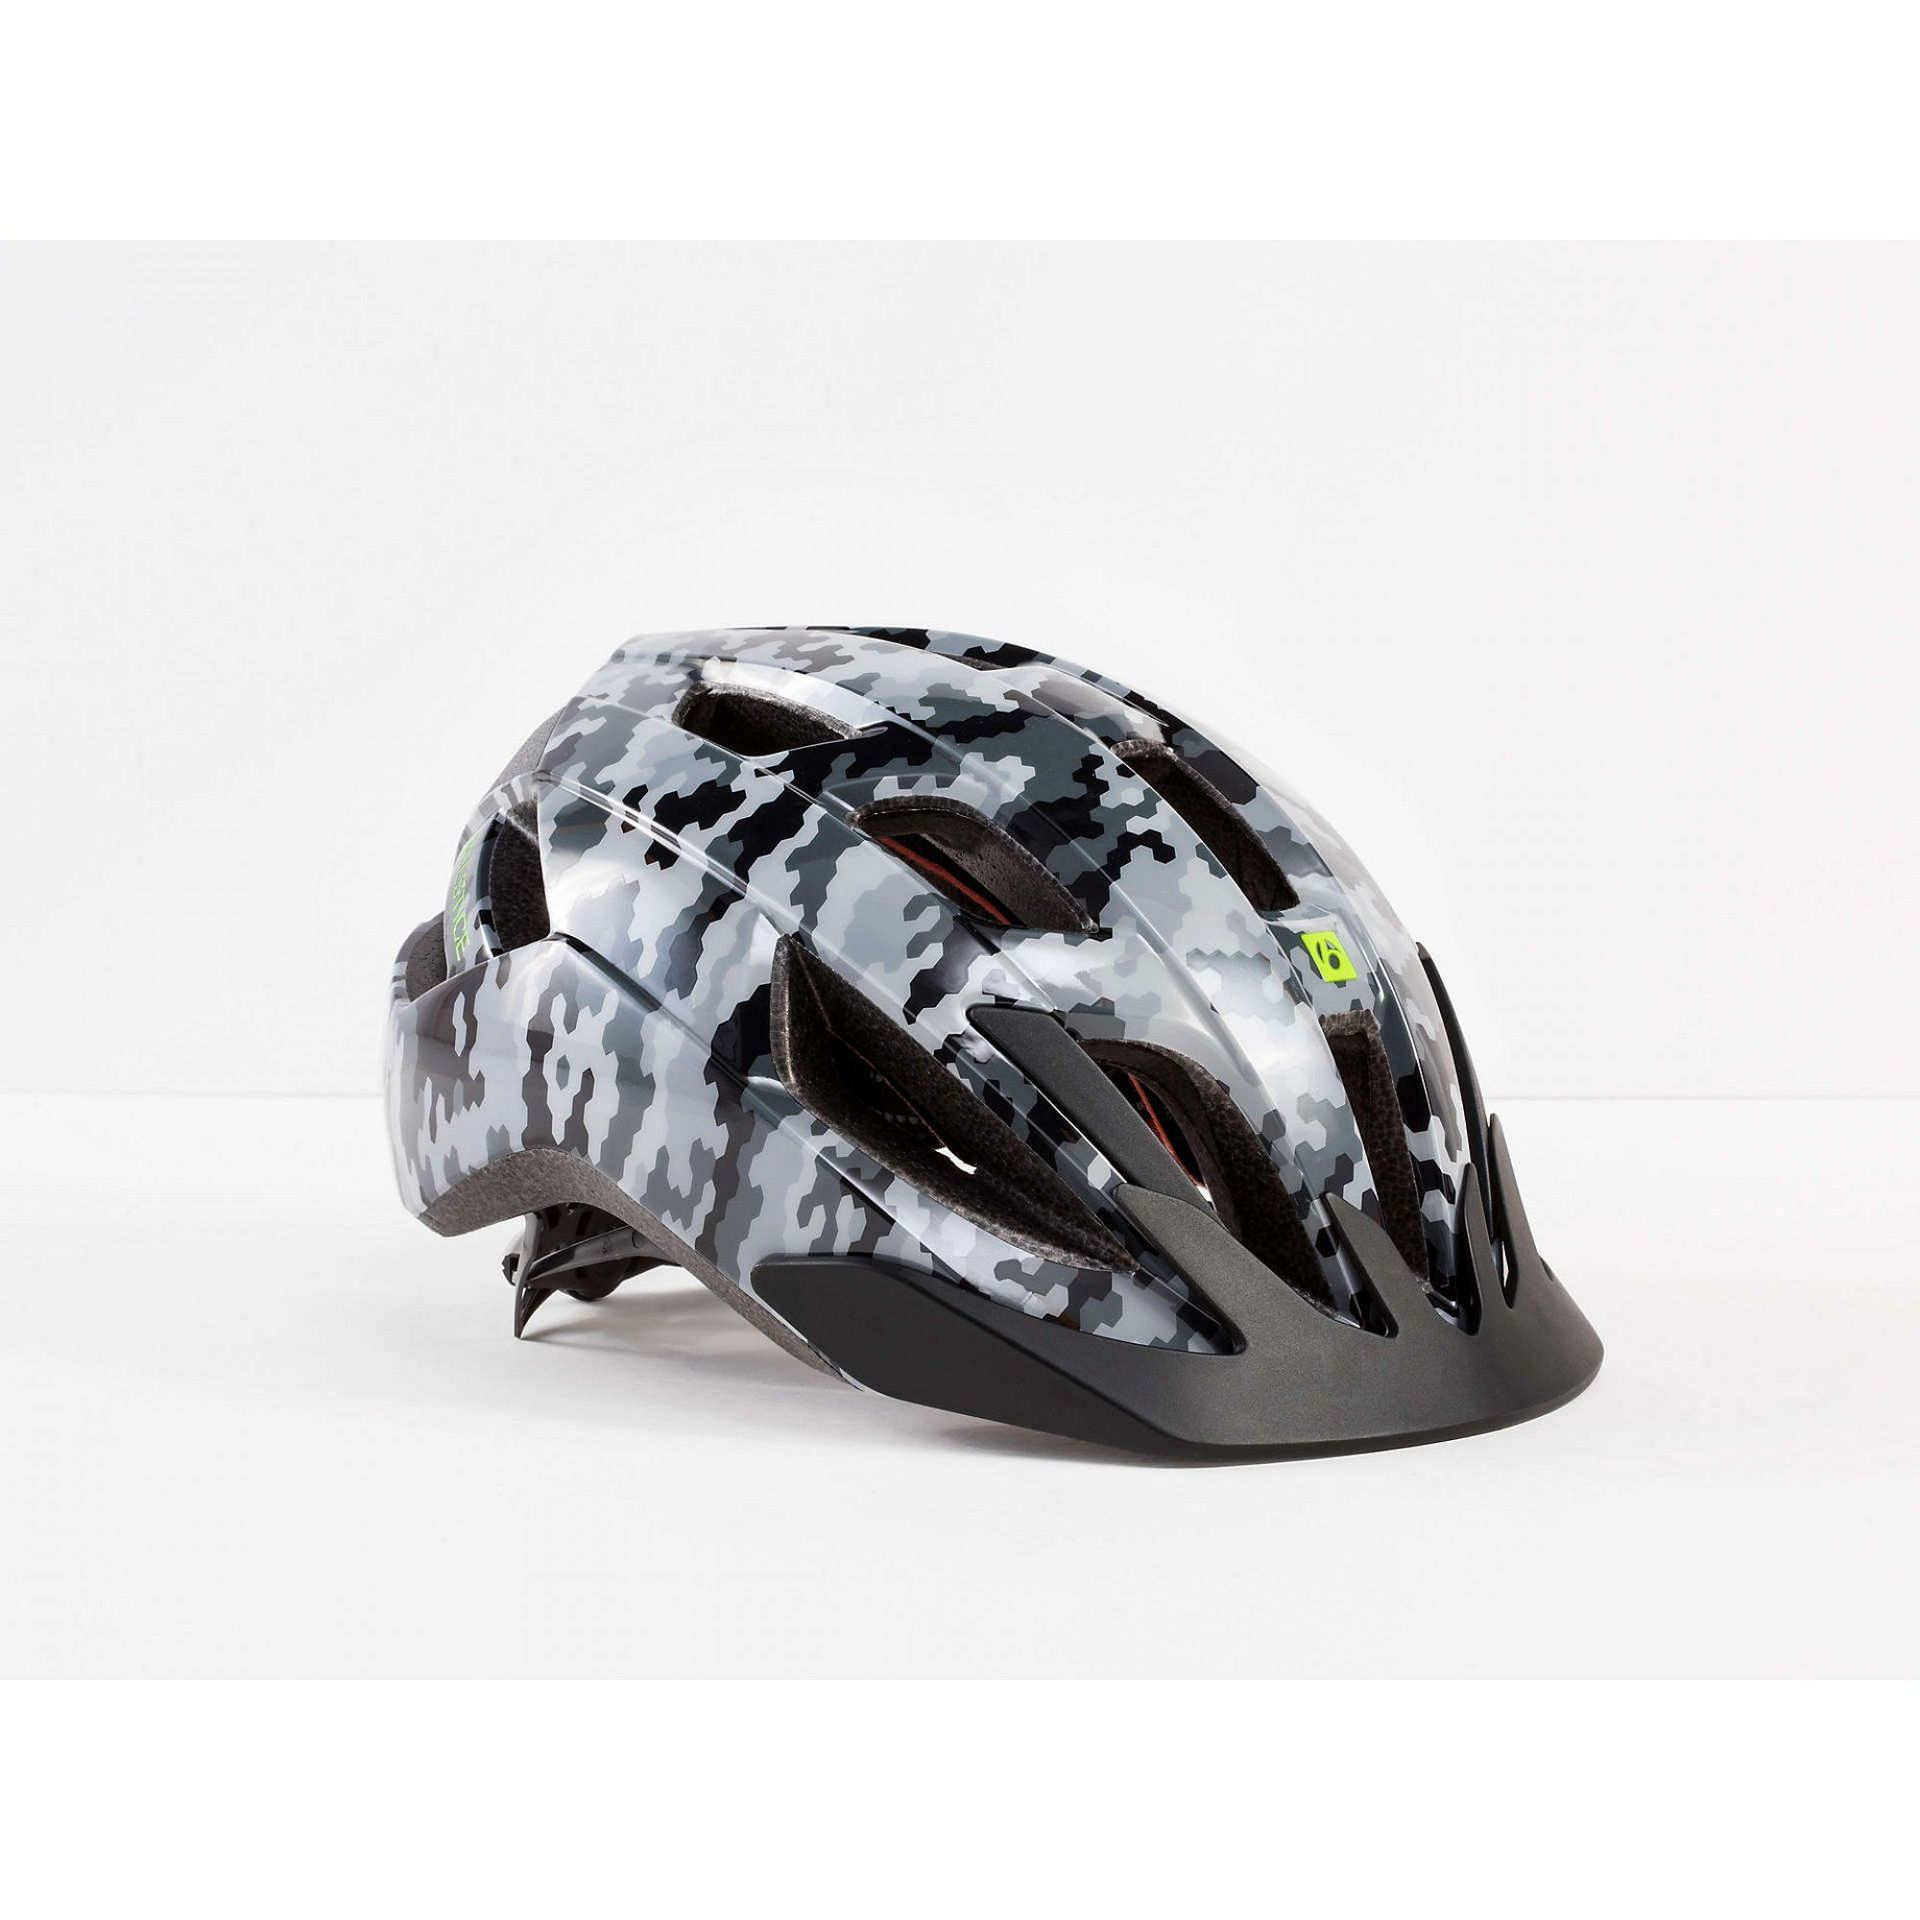 KASK ROWEROWY BONTRAGER SOLSTICE YOUTH 571751